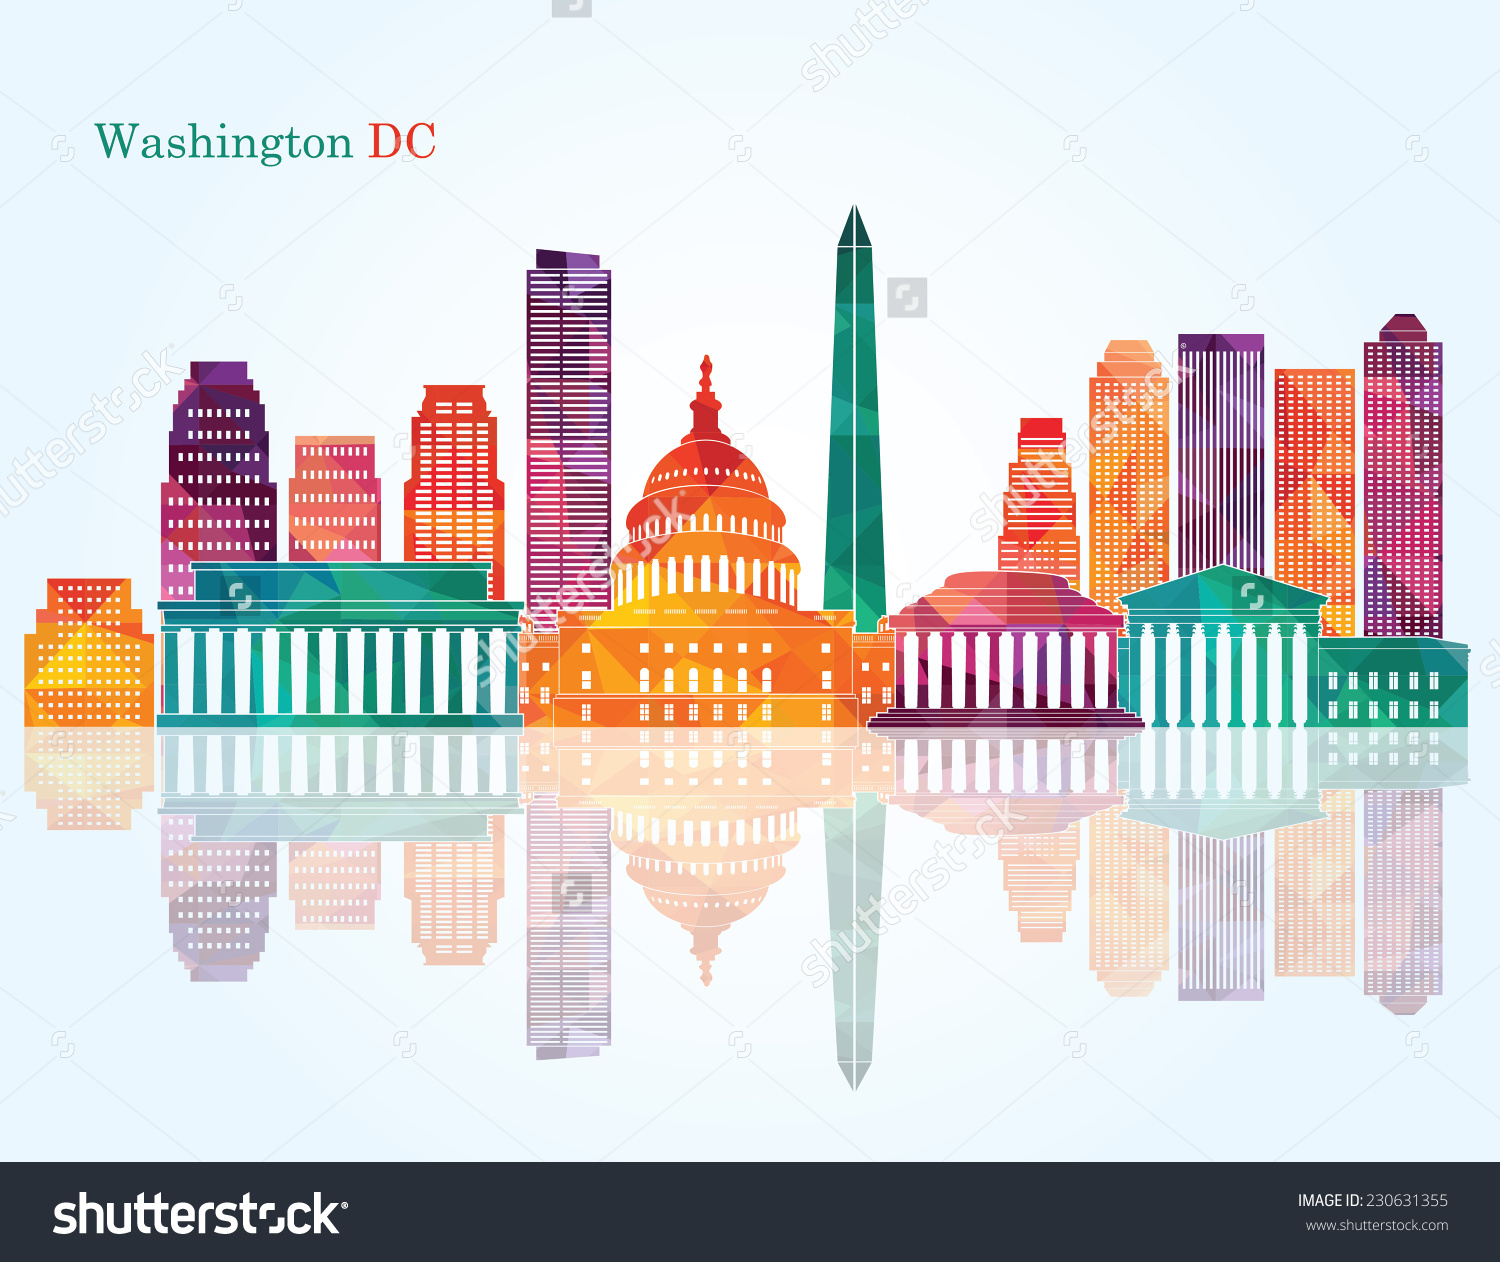 Washington Dc Skyline Vector Illustration Stock Vector 230631355.